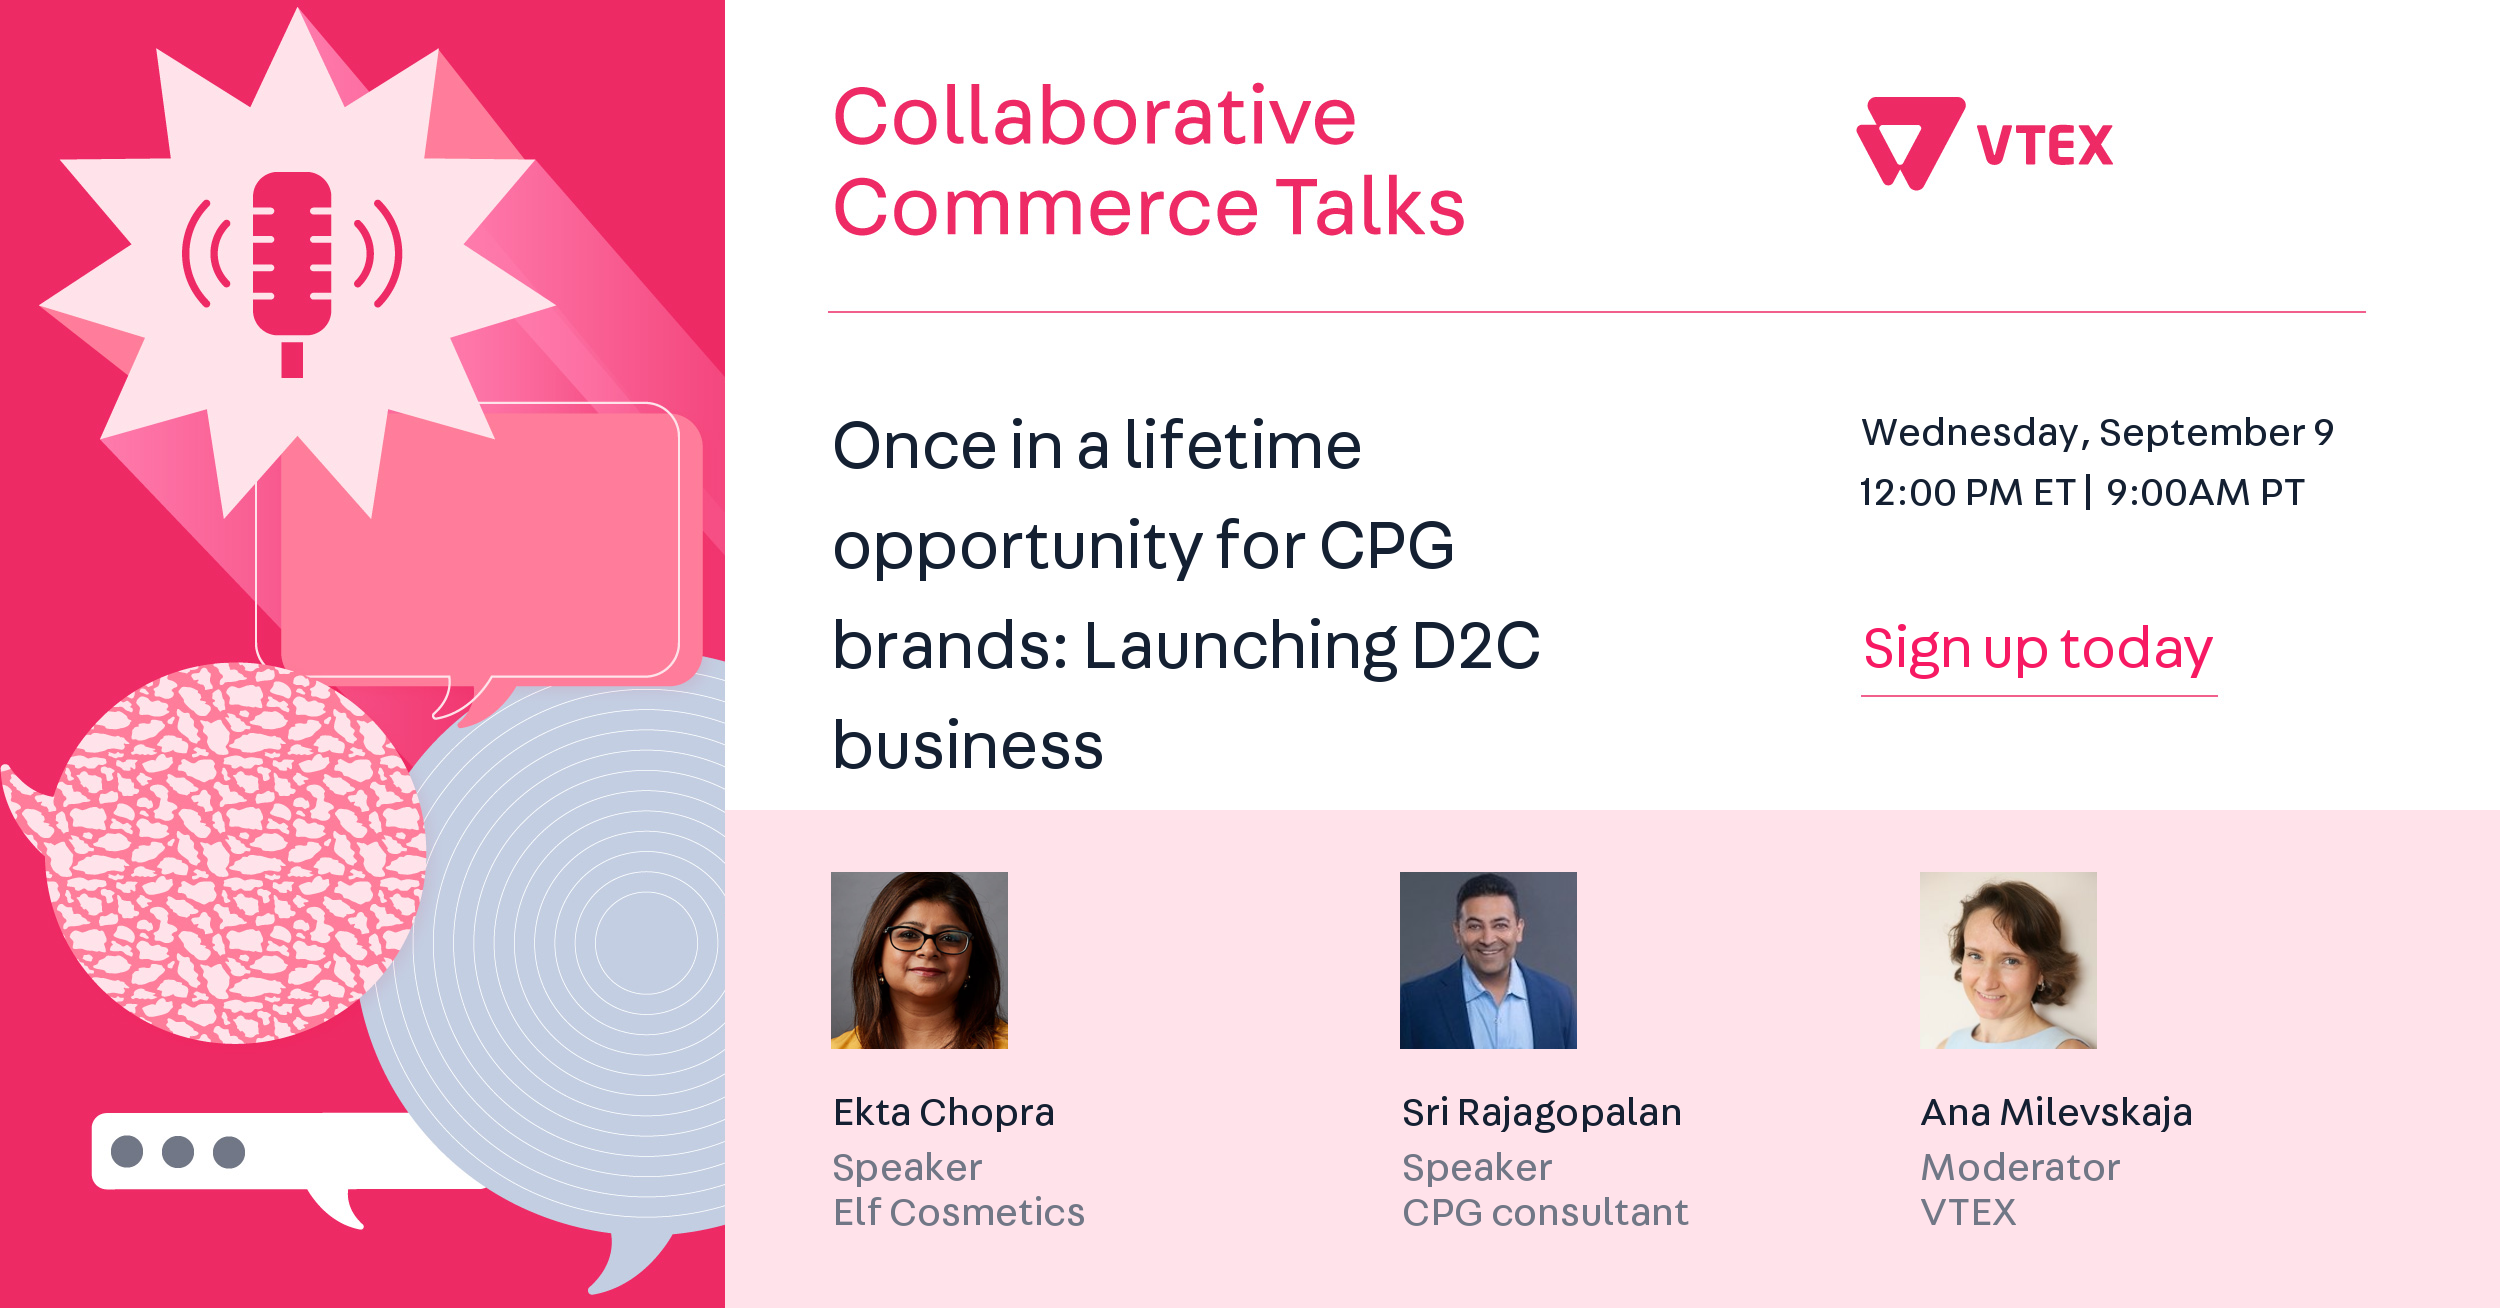 Once in a lifetime opportunity for CPG brands: Launching D2C business